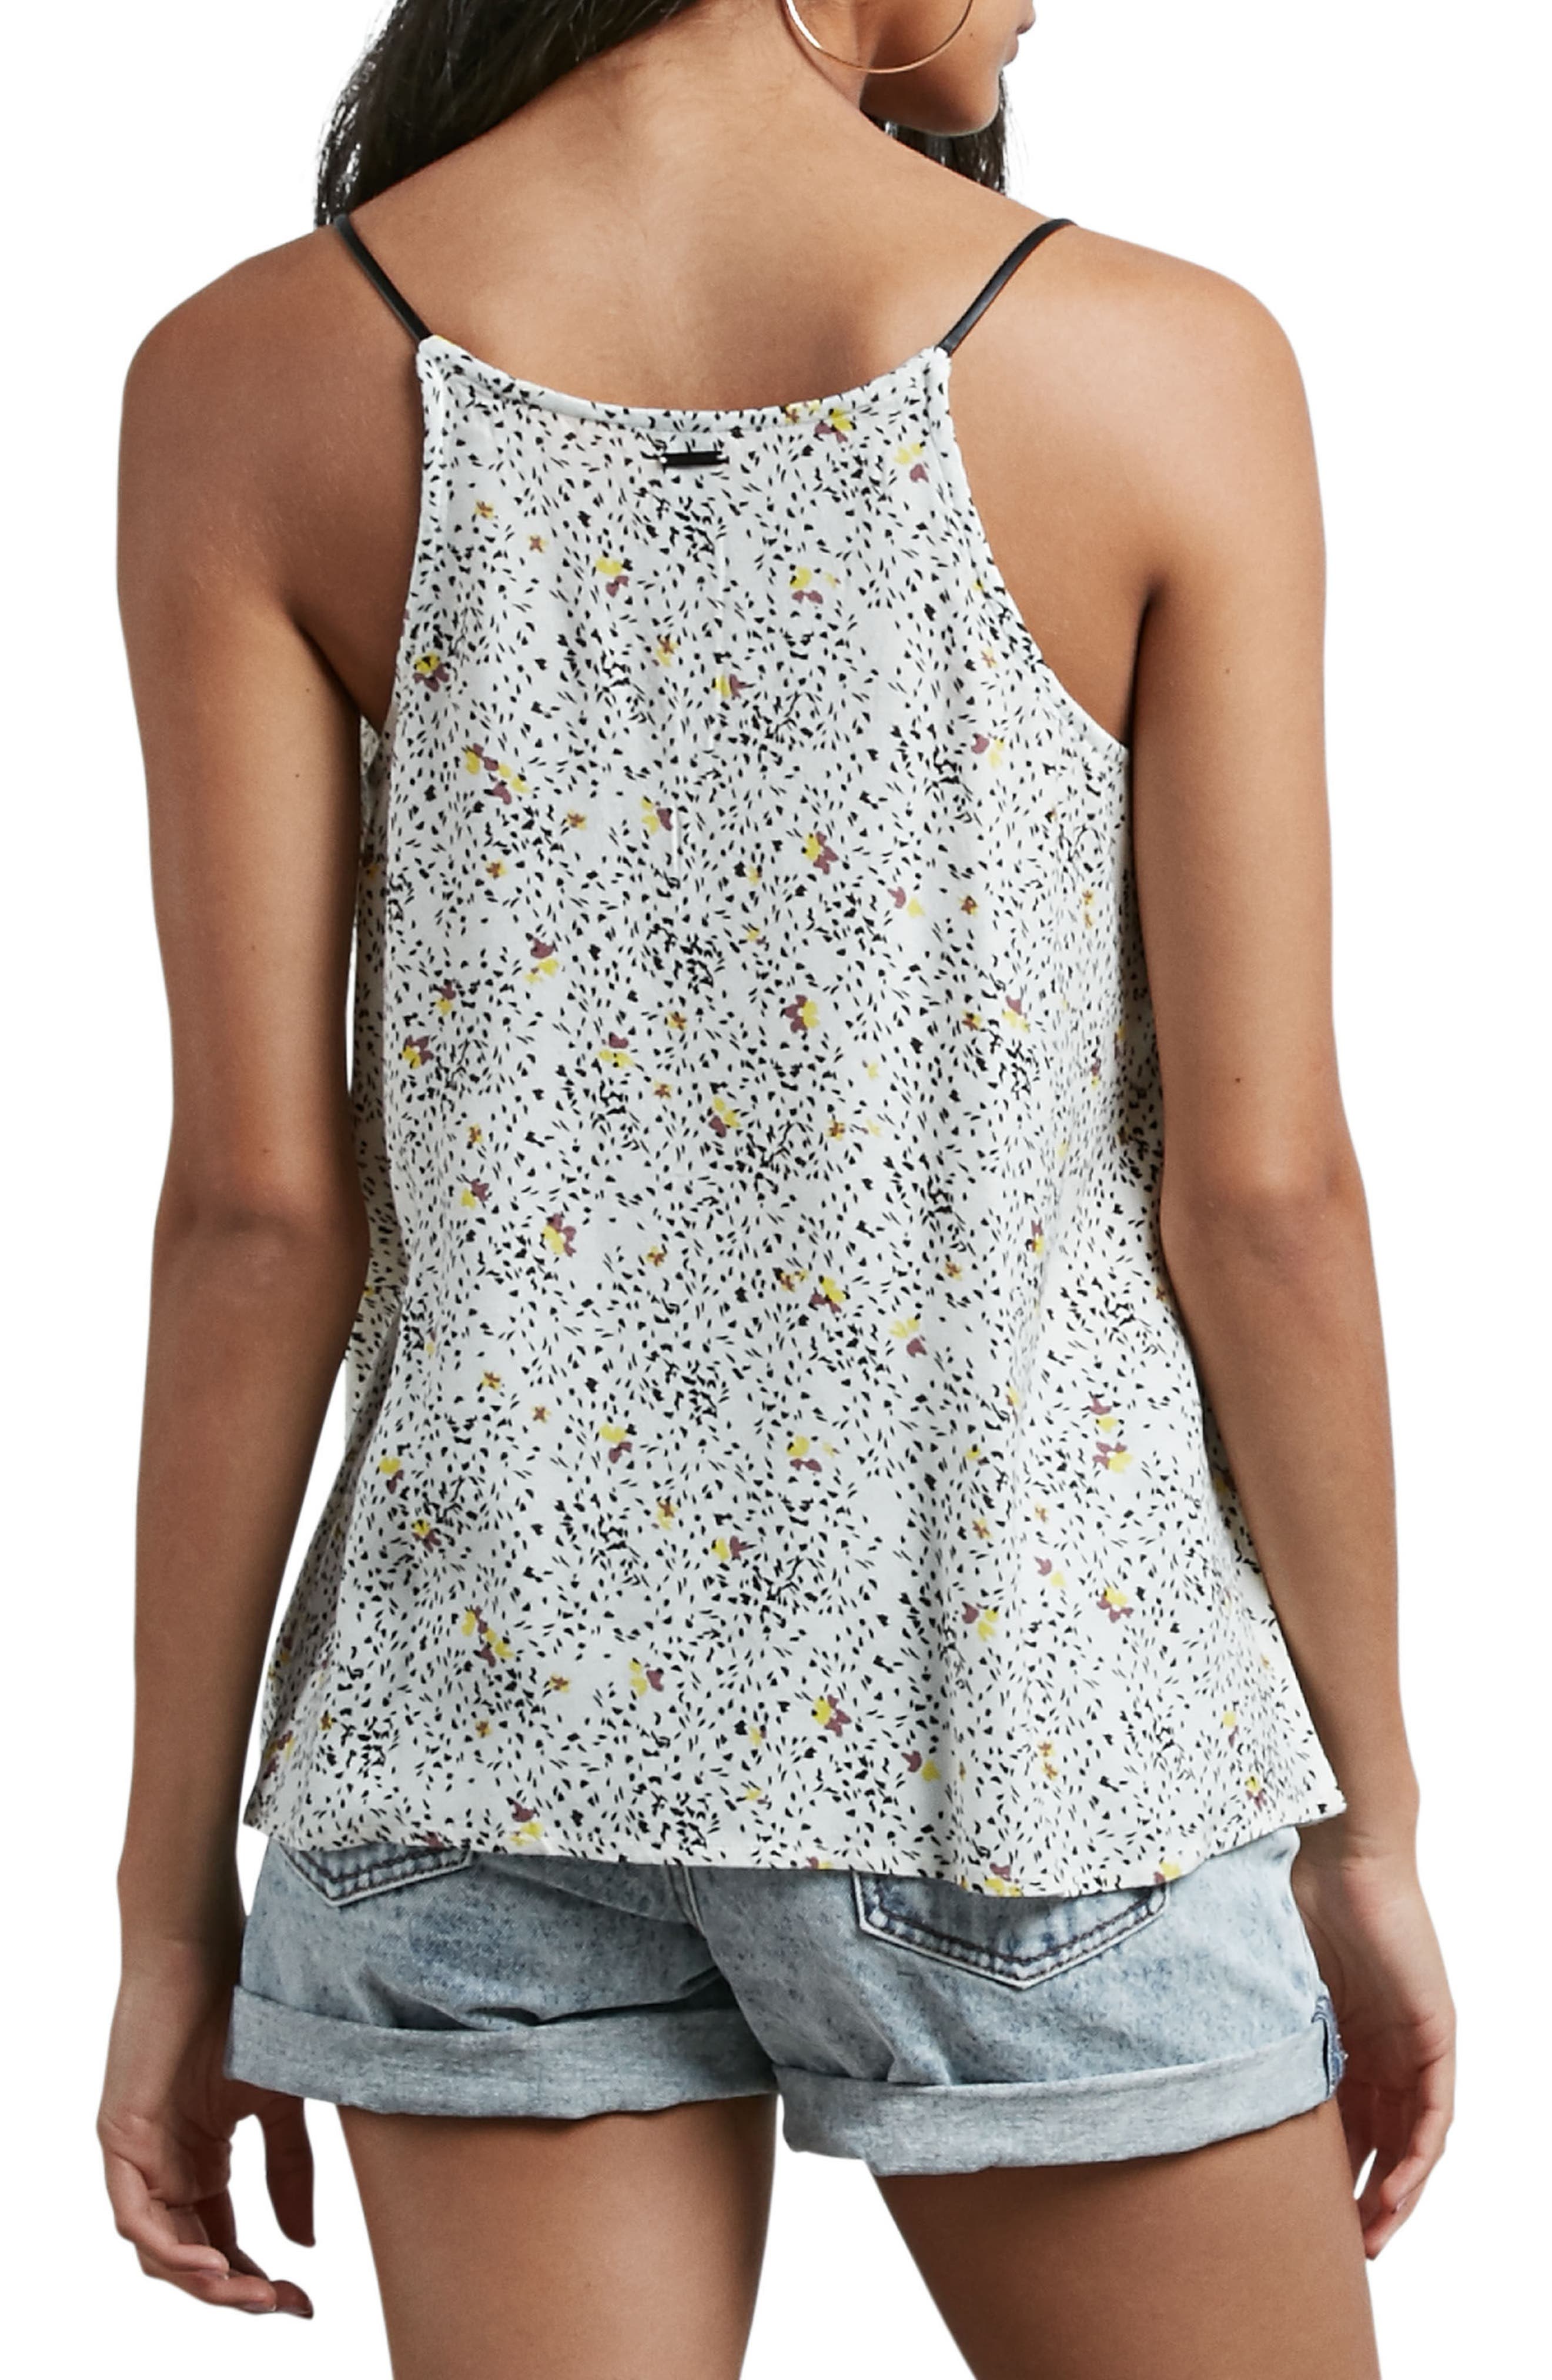 Thx It's a New Top Camisole,                             Alternate thumbnail 2, color,                             White